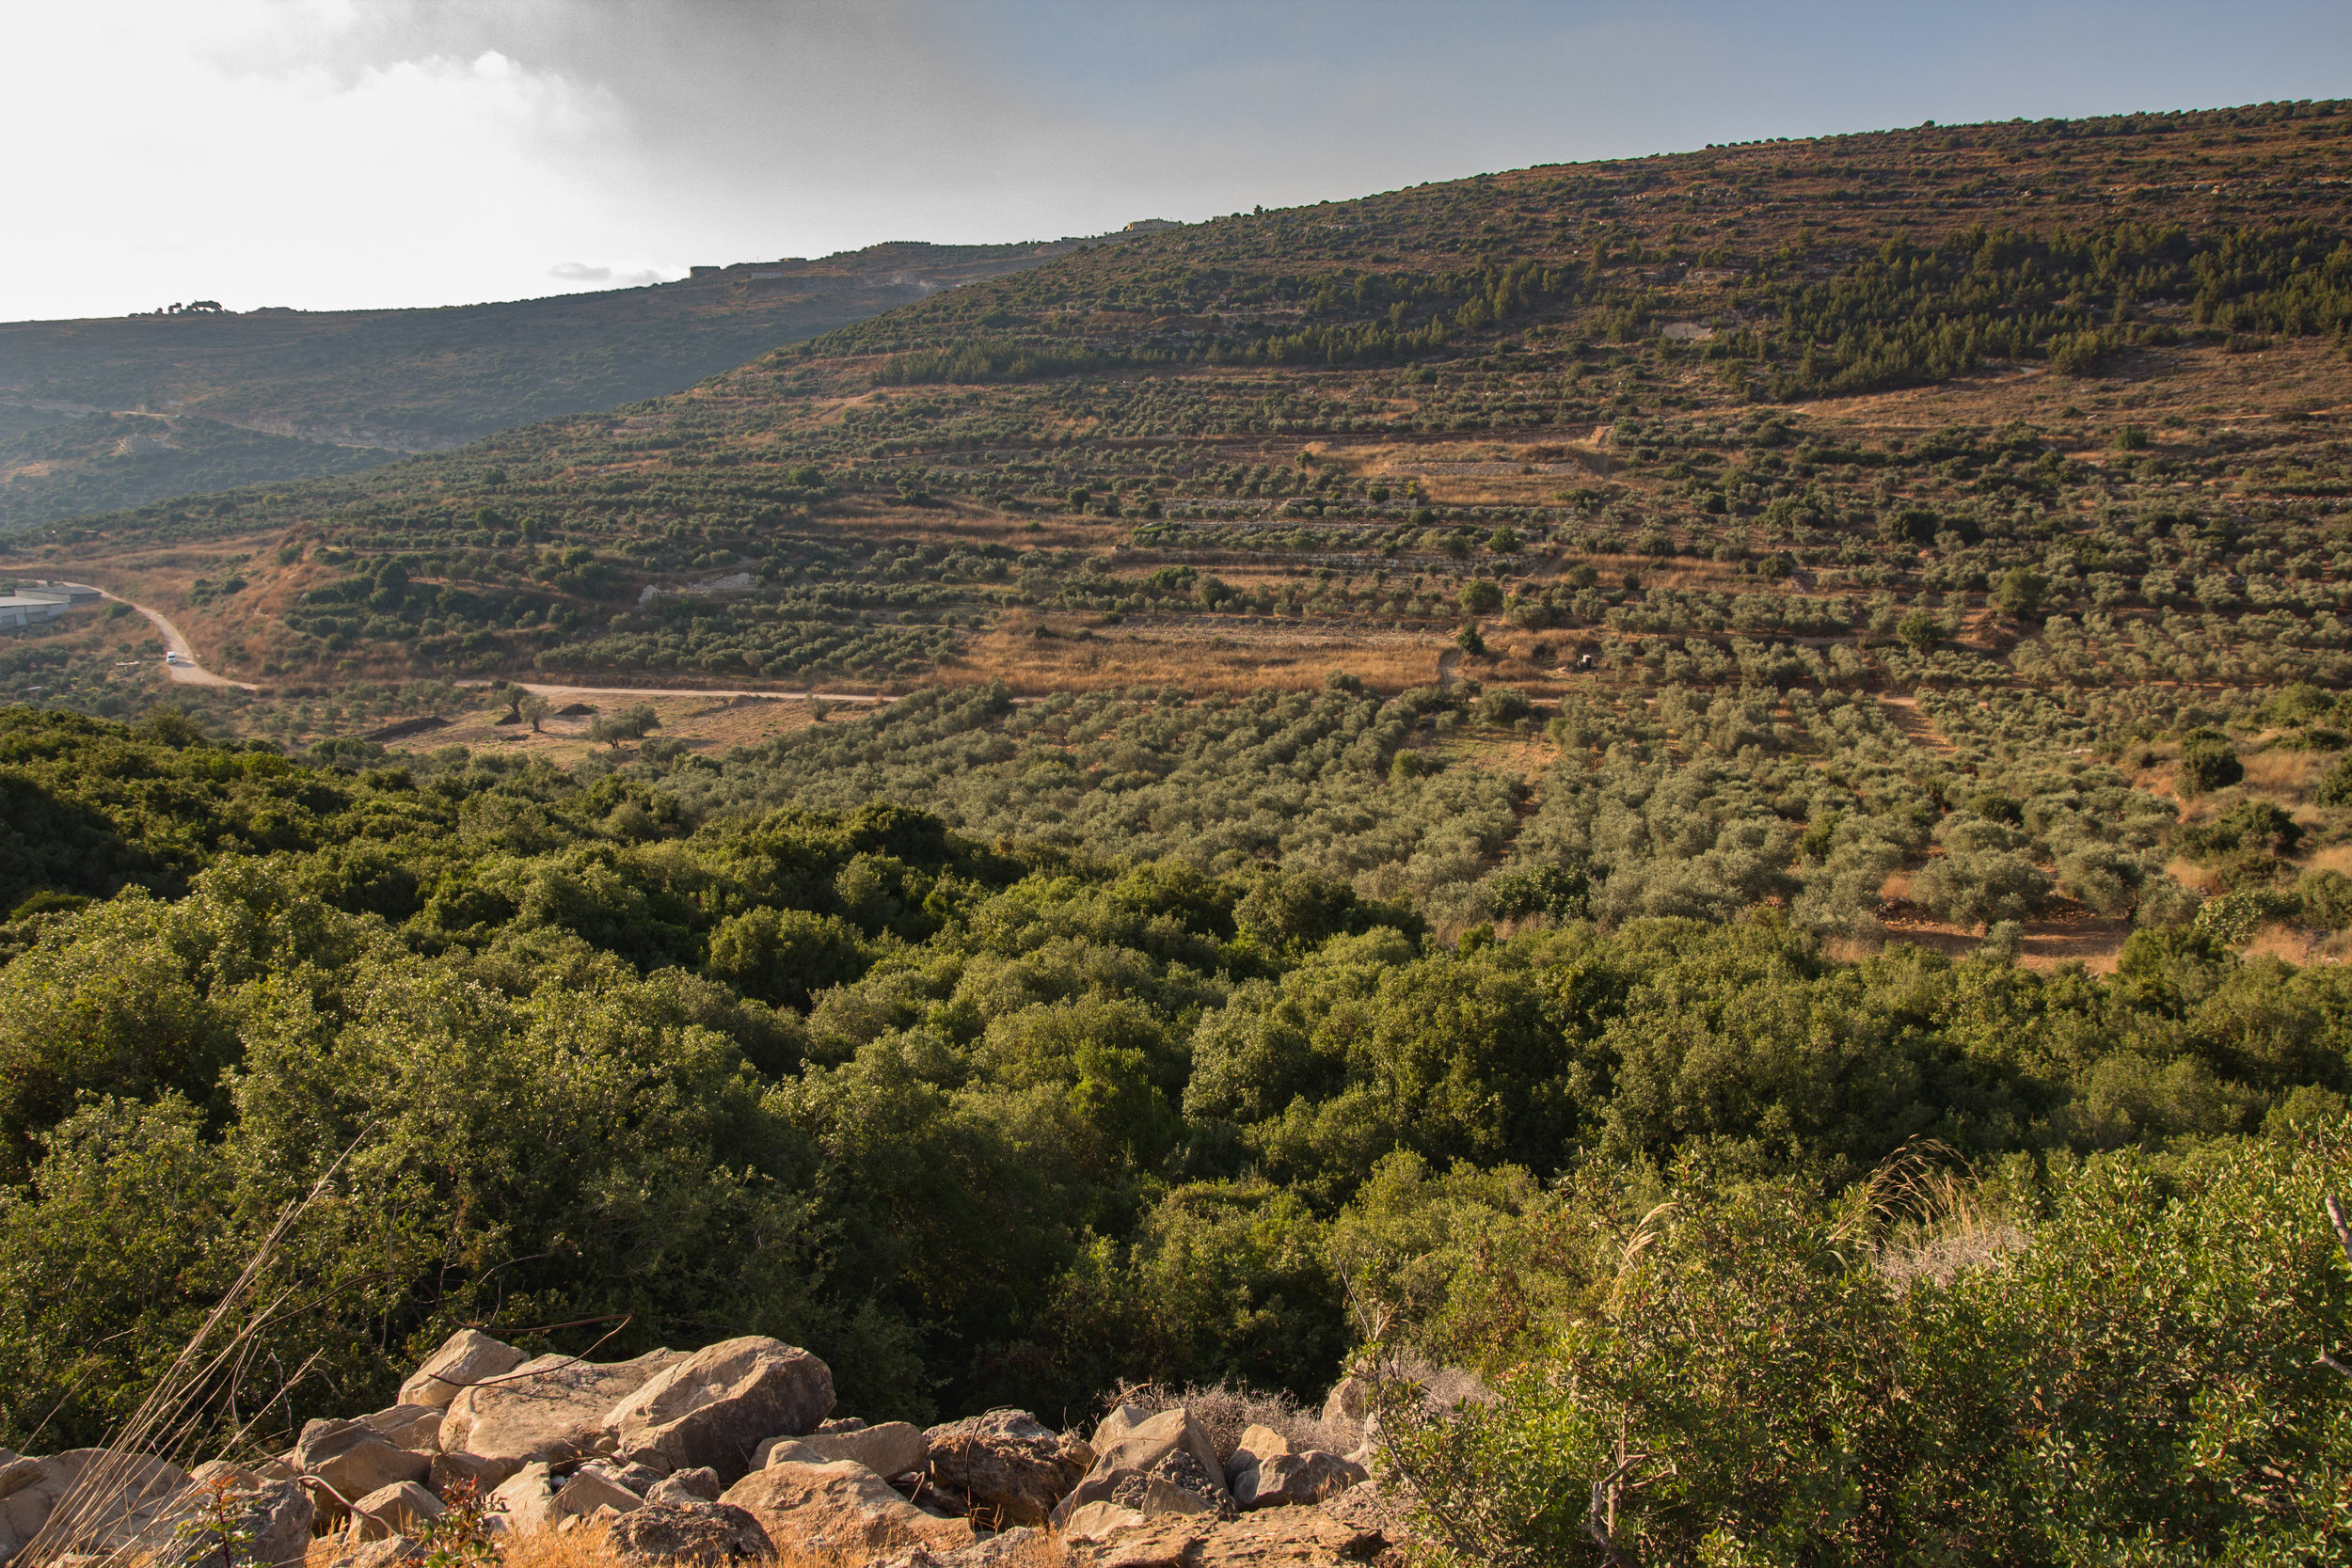 The view from the olive orchard at the yeshuv we stayed in.